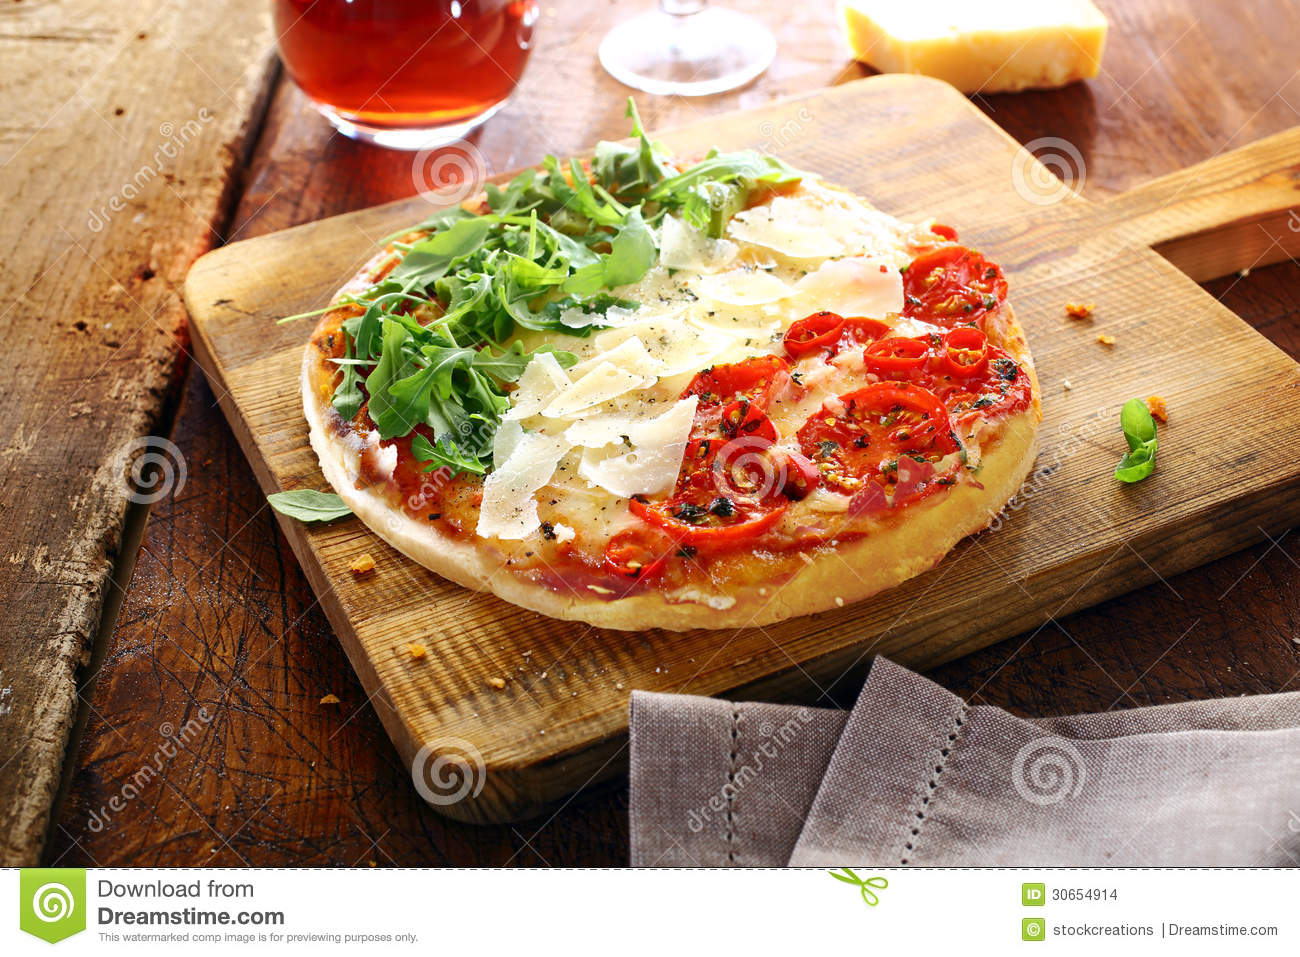 how to say cheese pizza in italian